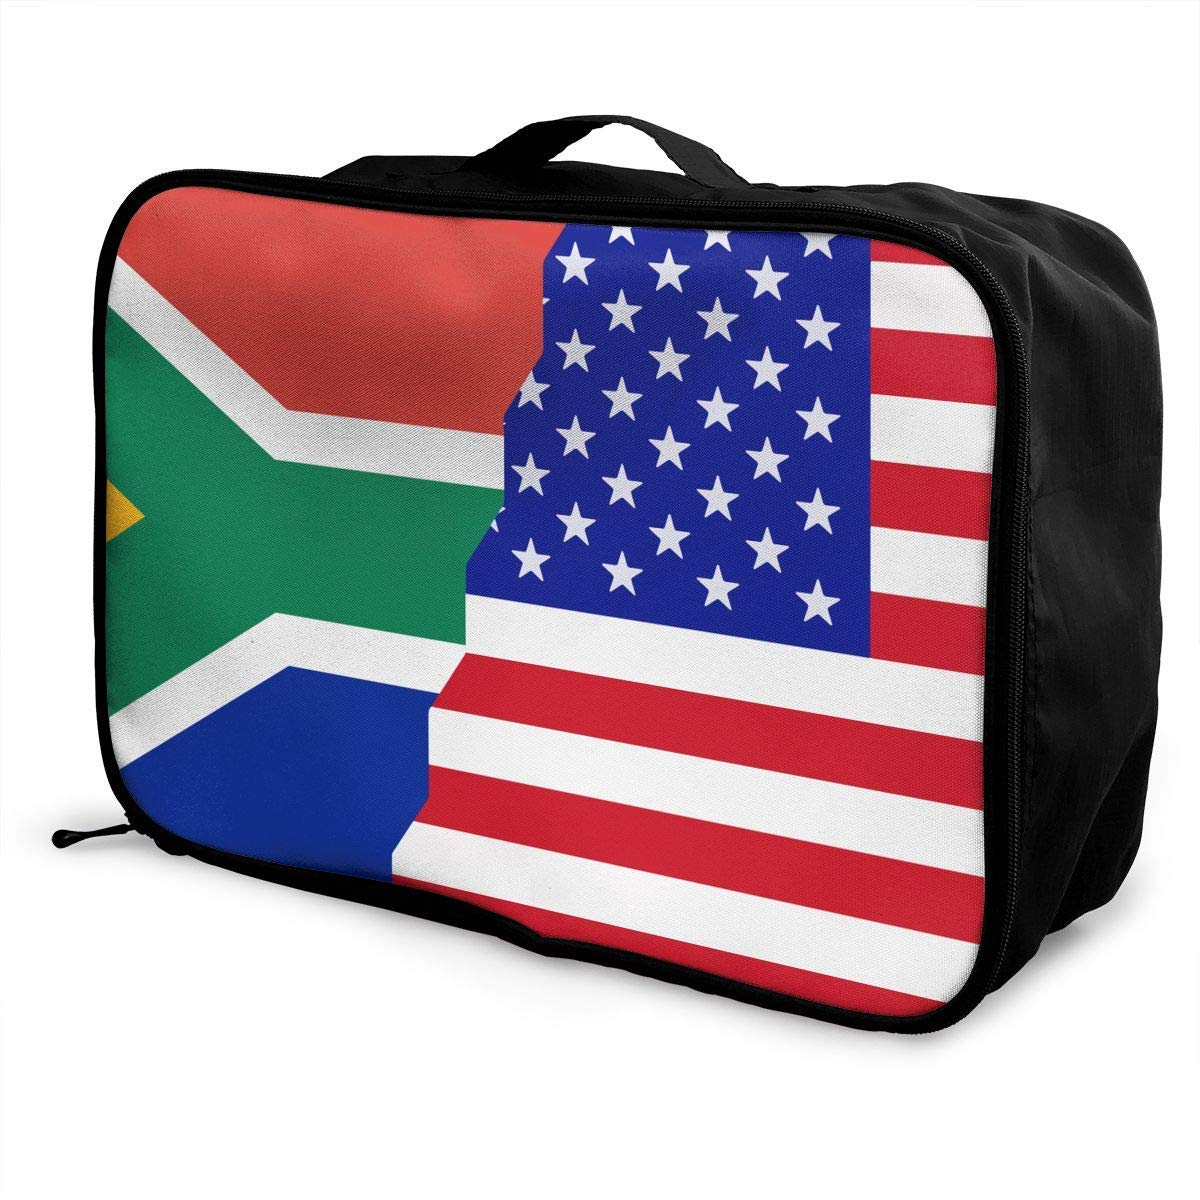 JTRVW American South African Flag Overnight Carry On Luggage Waterproof Fashion Travel Bag Lightweight Suitcases